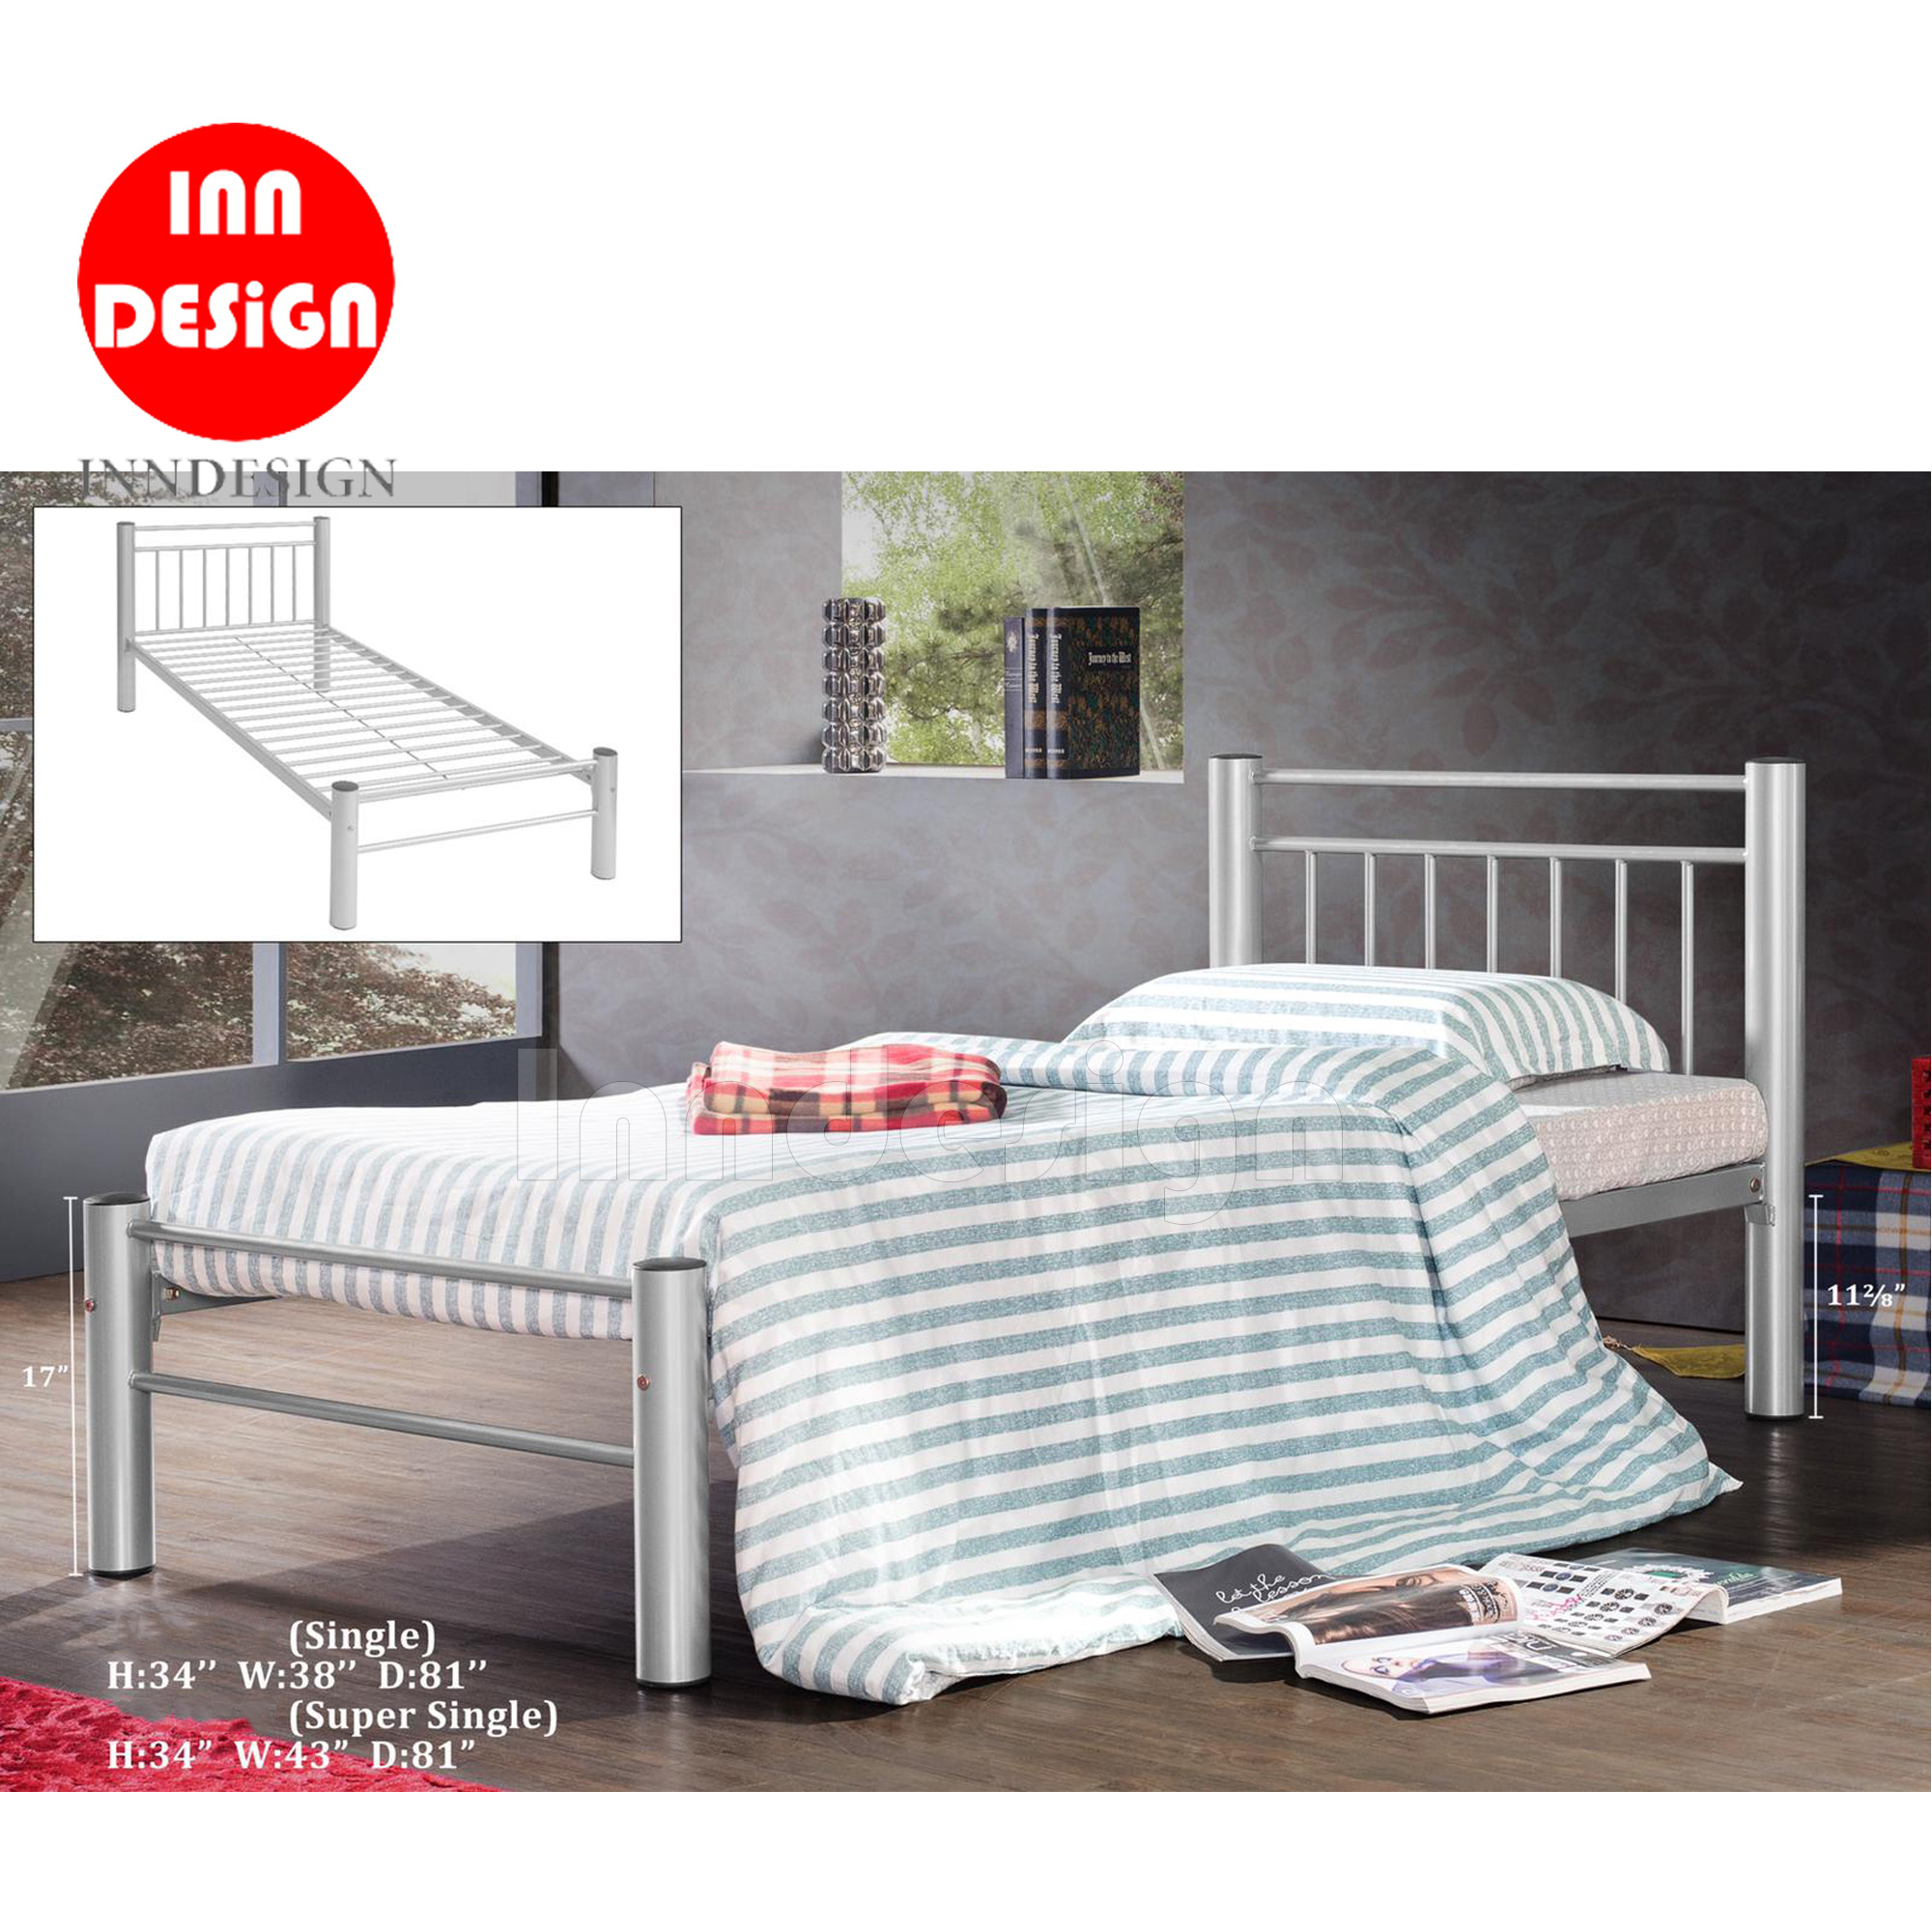 Ceili Super Single Metal Bedframe